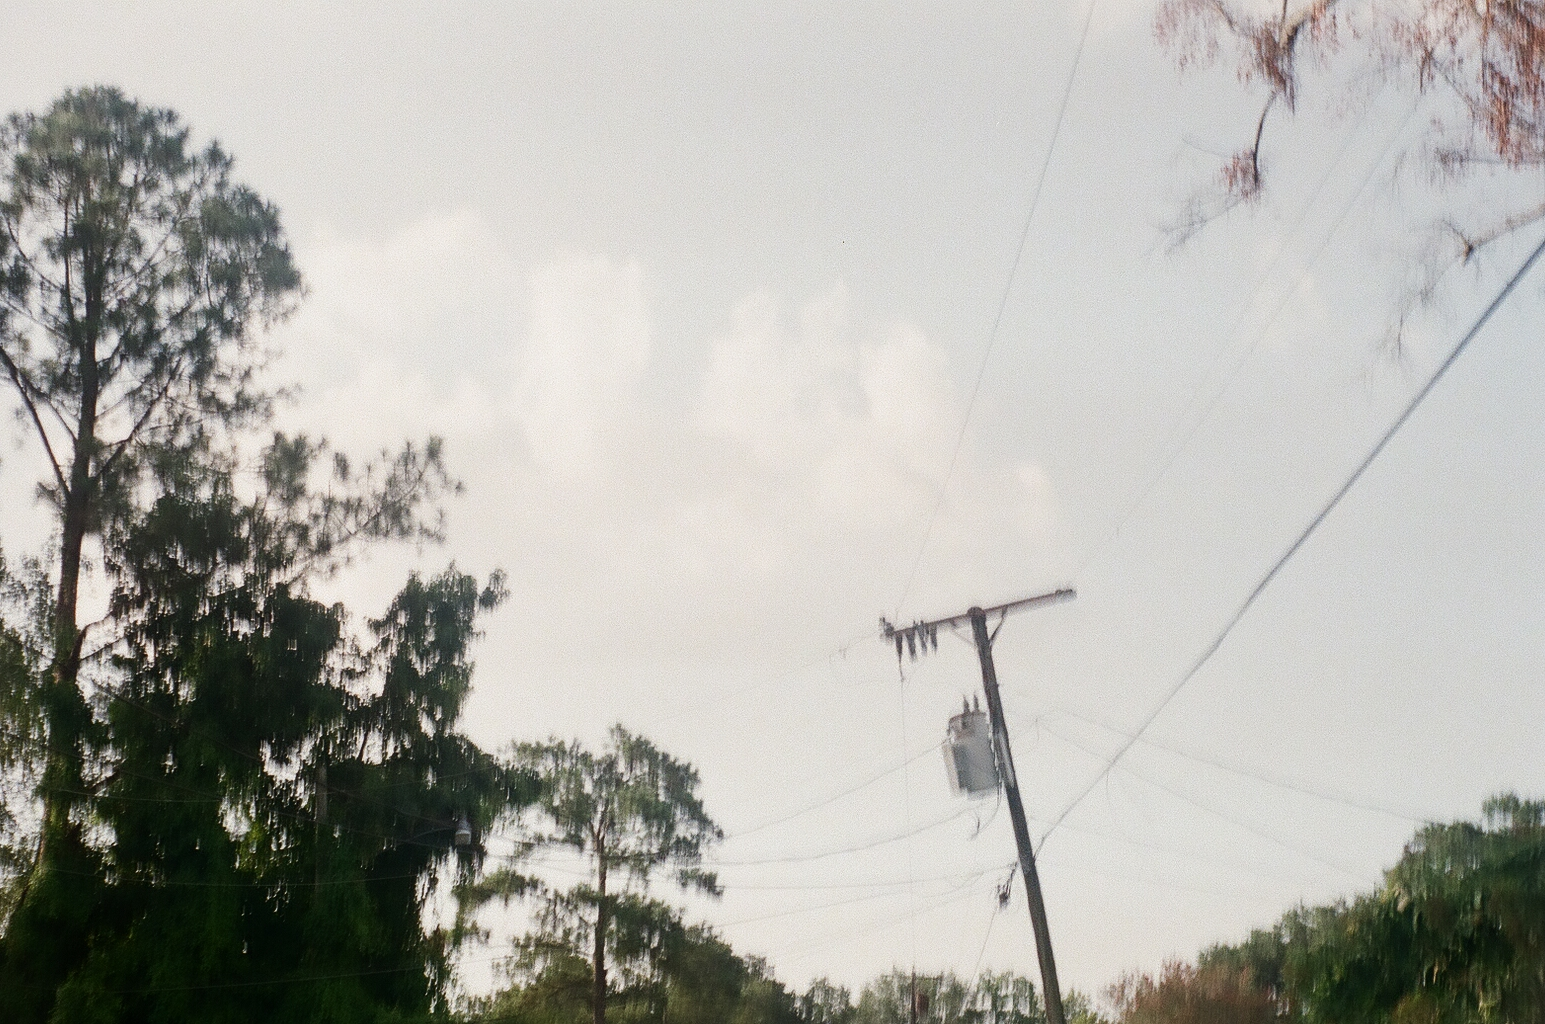 Telephone pole, trees, and attempted clouds